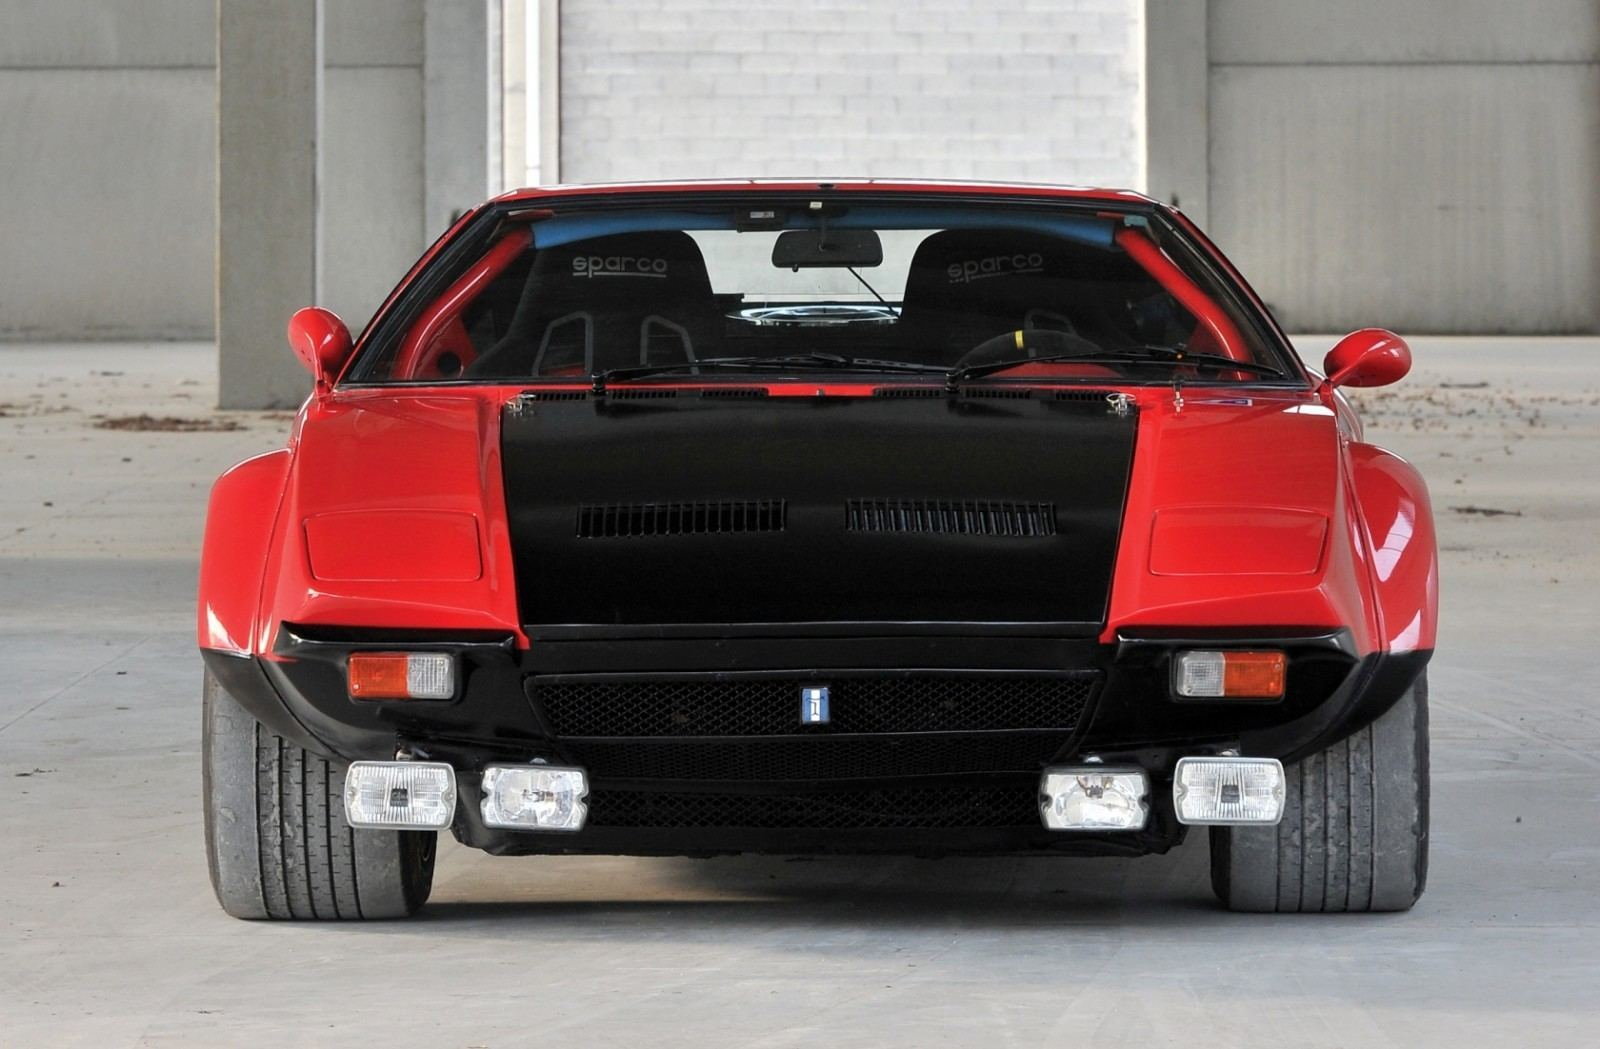 RM Auctions Monaco 2014 Highlights - 1973 DeTomaso Pantera Rally Special Is Low-Brow Heaven 16